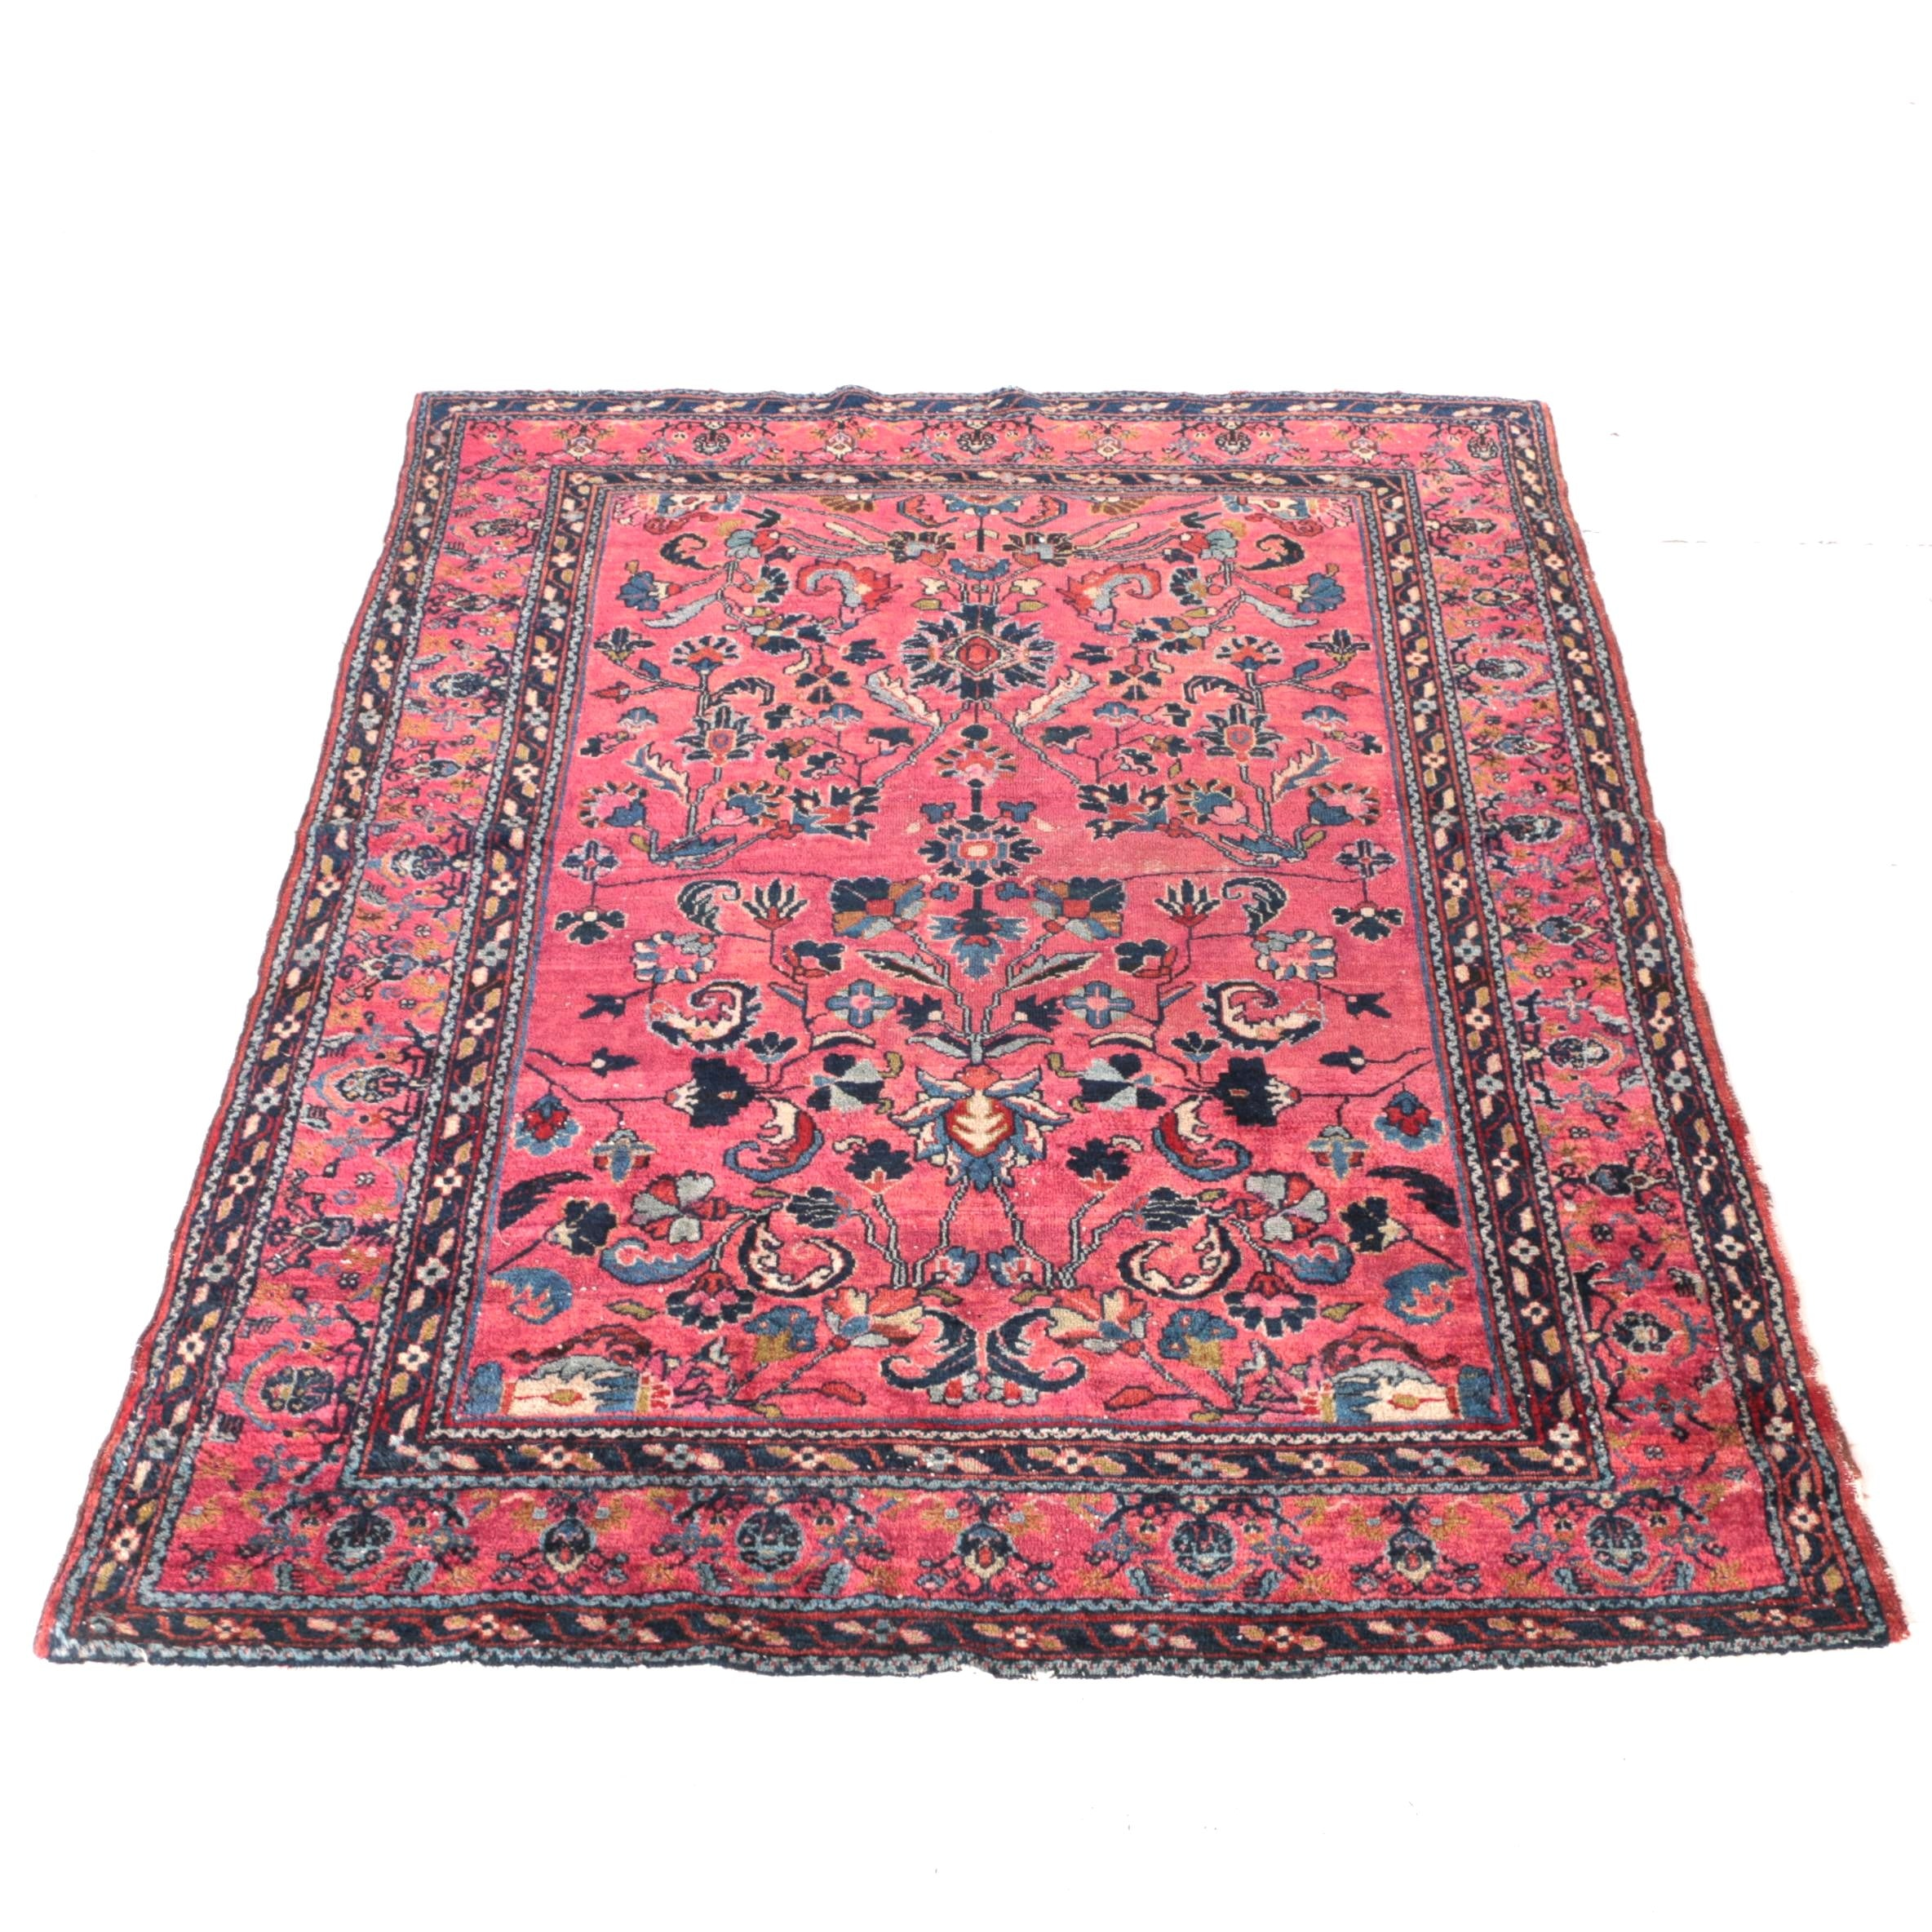 Semi-Antique Hand-Knotted Persian Arak Area Rug